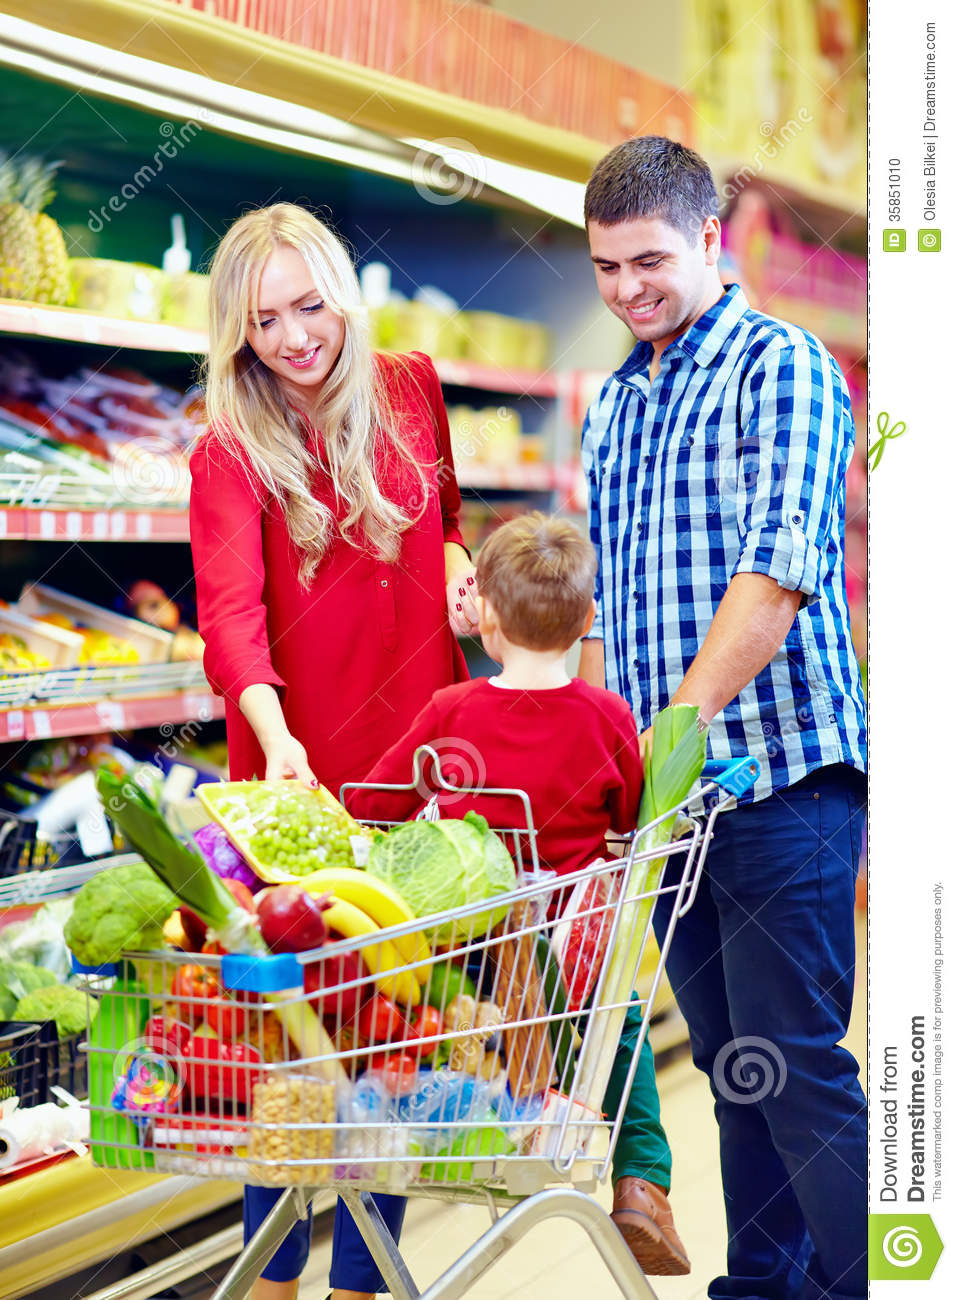 Family Shopping In Grocery Market Stock Photo - Image: 35851010